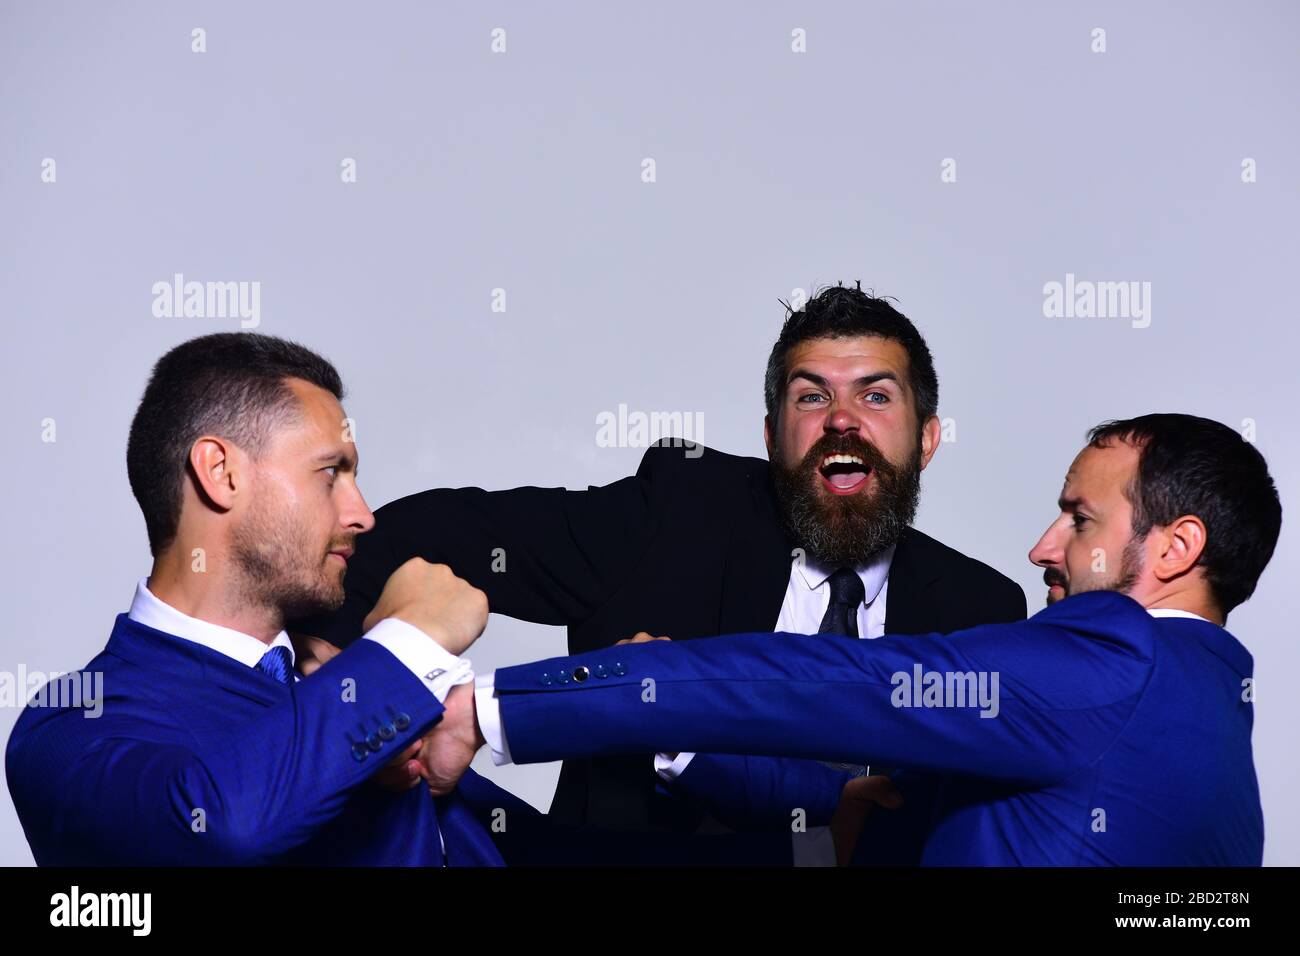 Businessmen with serious and angry faces in formal suits on grey background. Leaders fight for business leadership. Coworkers decide upon best working position. Business conflict and argument concept Stock Photo